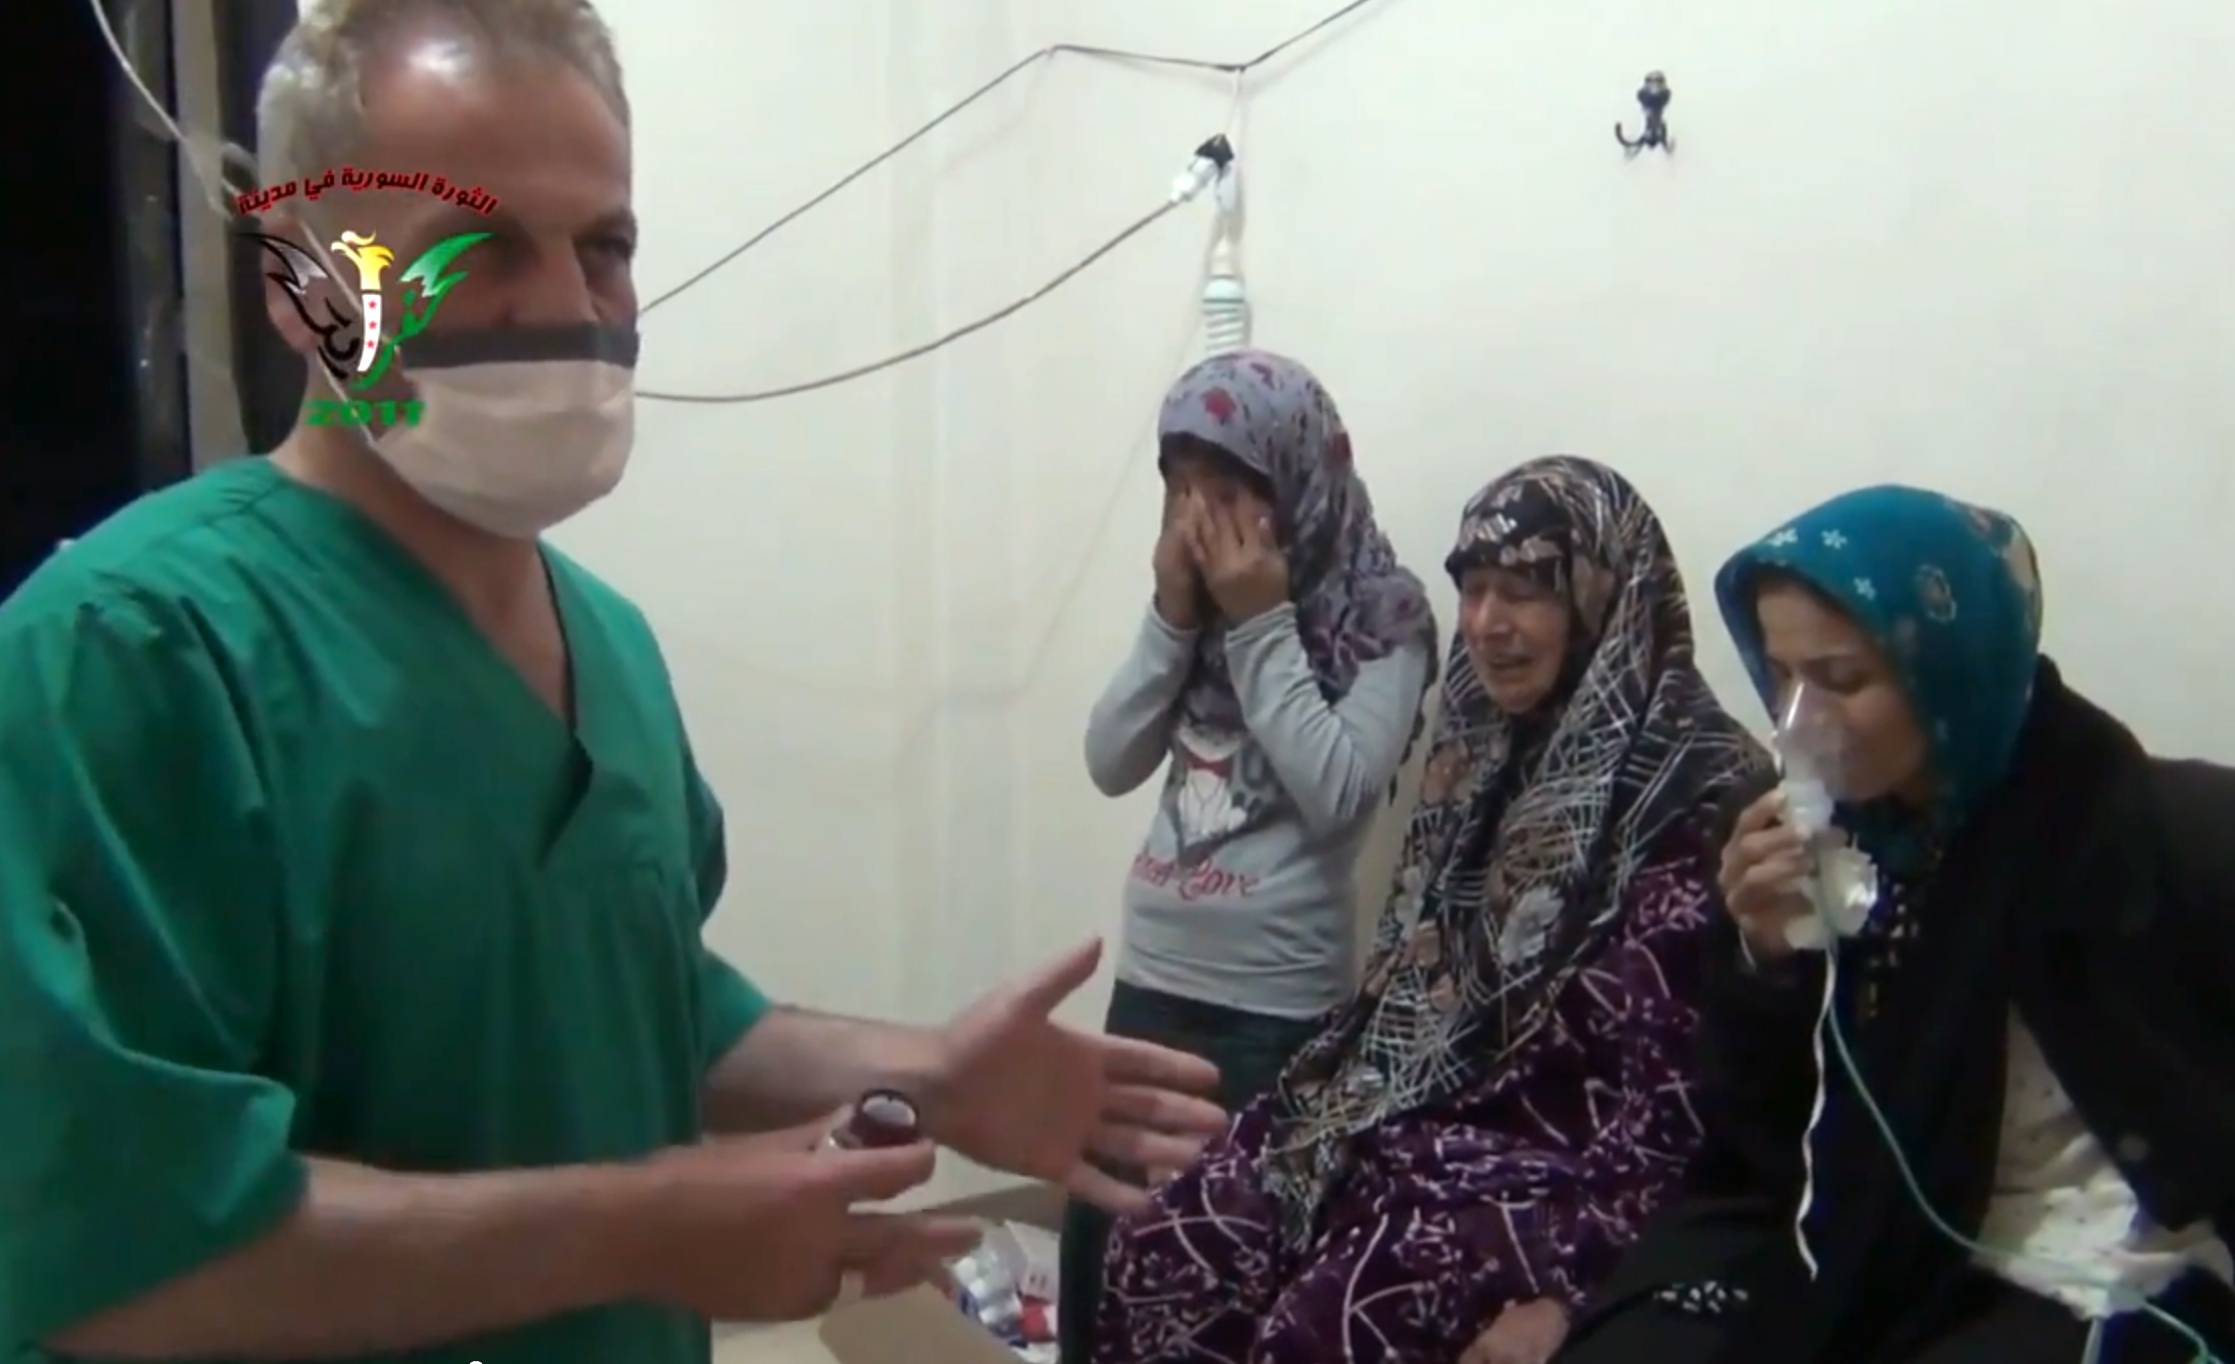 In this image taken from video, two women and a young girl are treated by a medic in Kfar Zeita, a rebel-held village in Hama province some 200 kilometers (125 miles) north of Damascus. Syrian opposition activists and other witnesses tell The Associated Press that Syrian government forces have attacked rebel-held areas with poisonous chlorine gas in recent months.